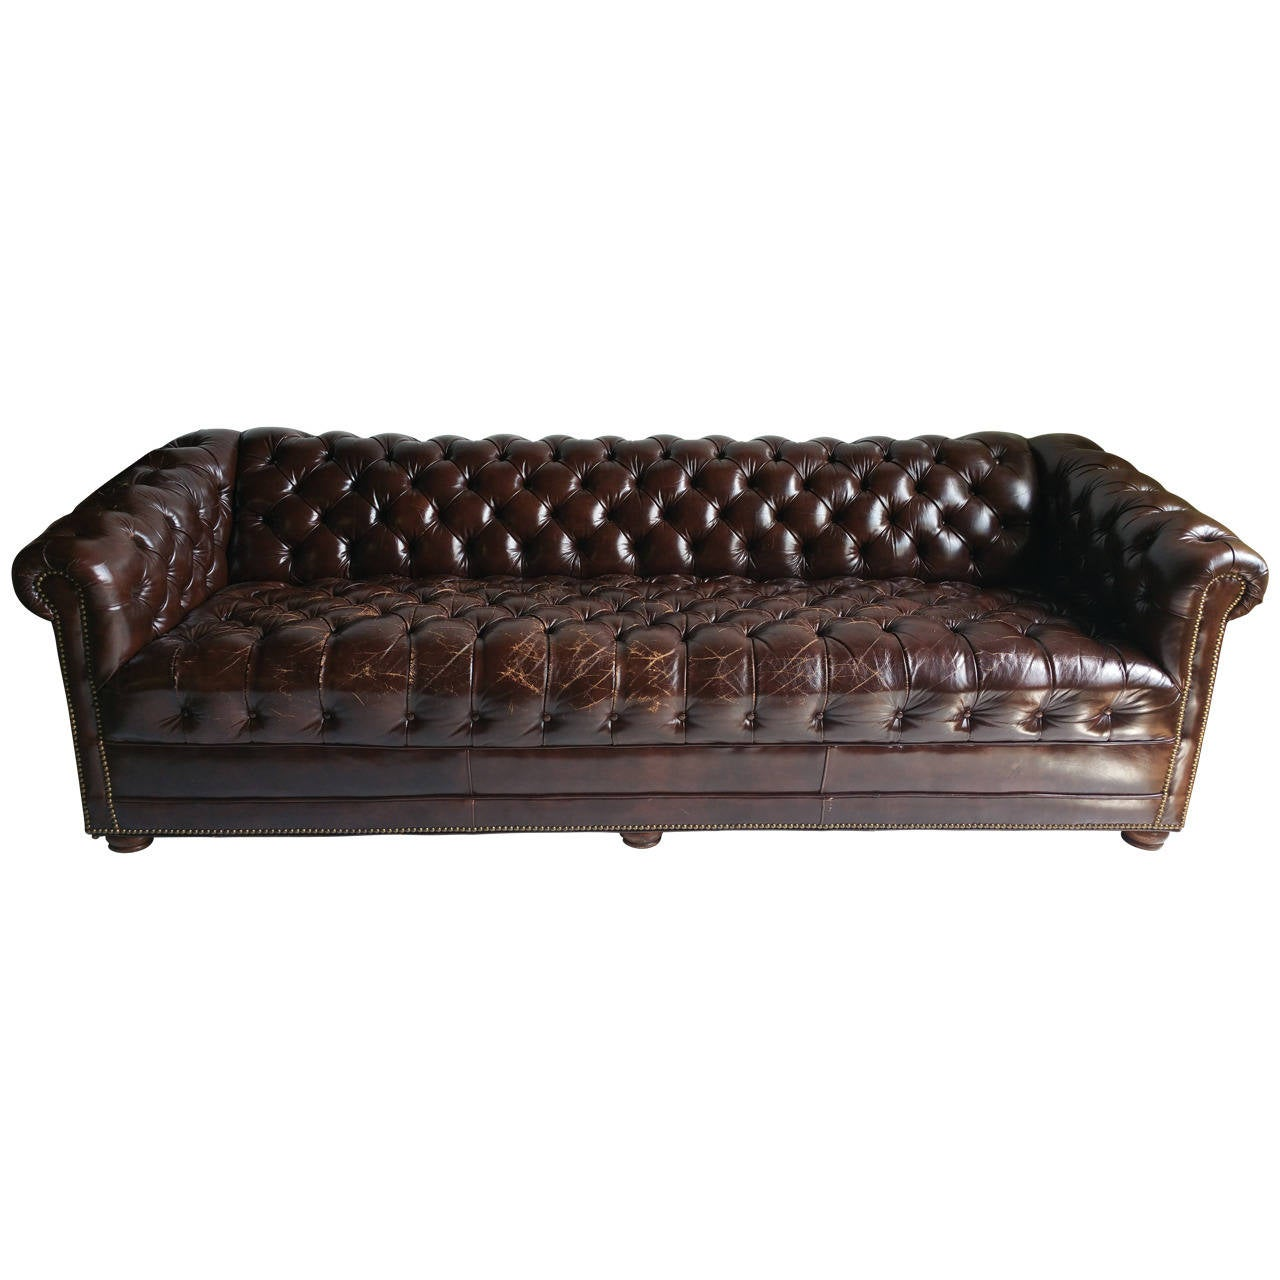 Etonnant Brown Leather Button Tufted Chesterfield Sofa, Classic For Sale